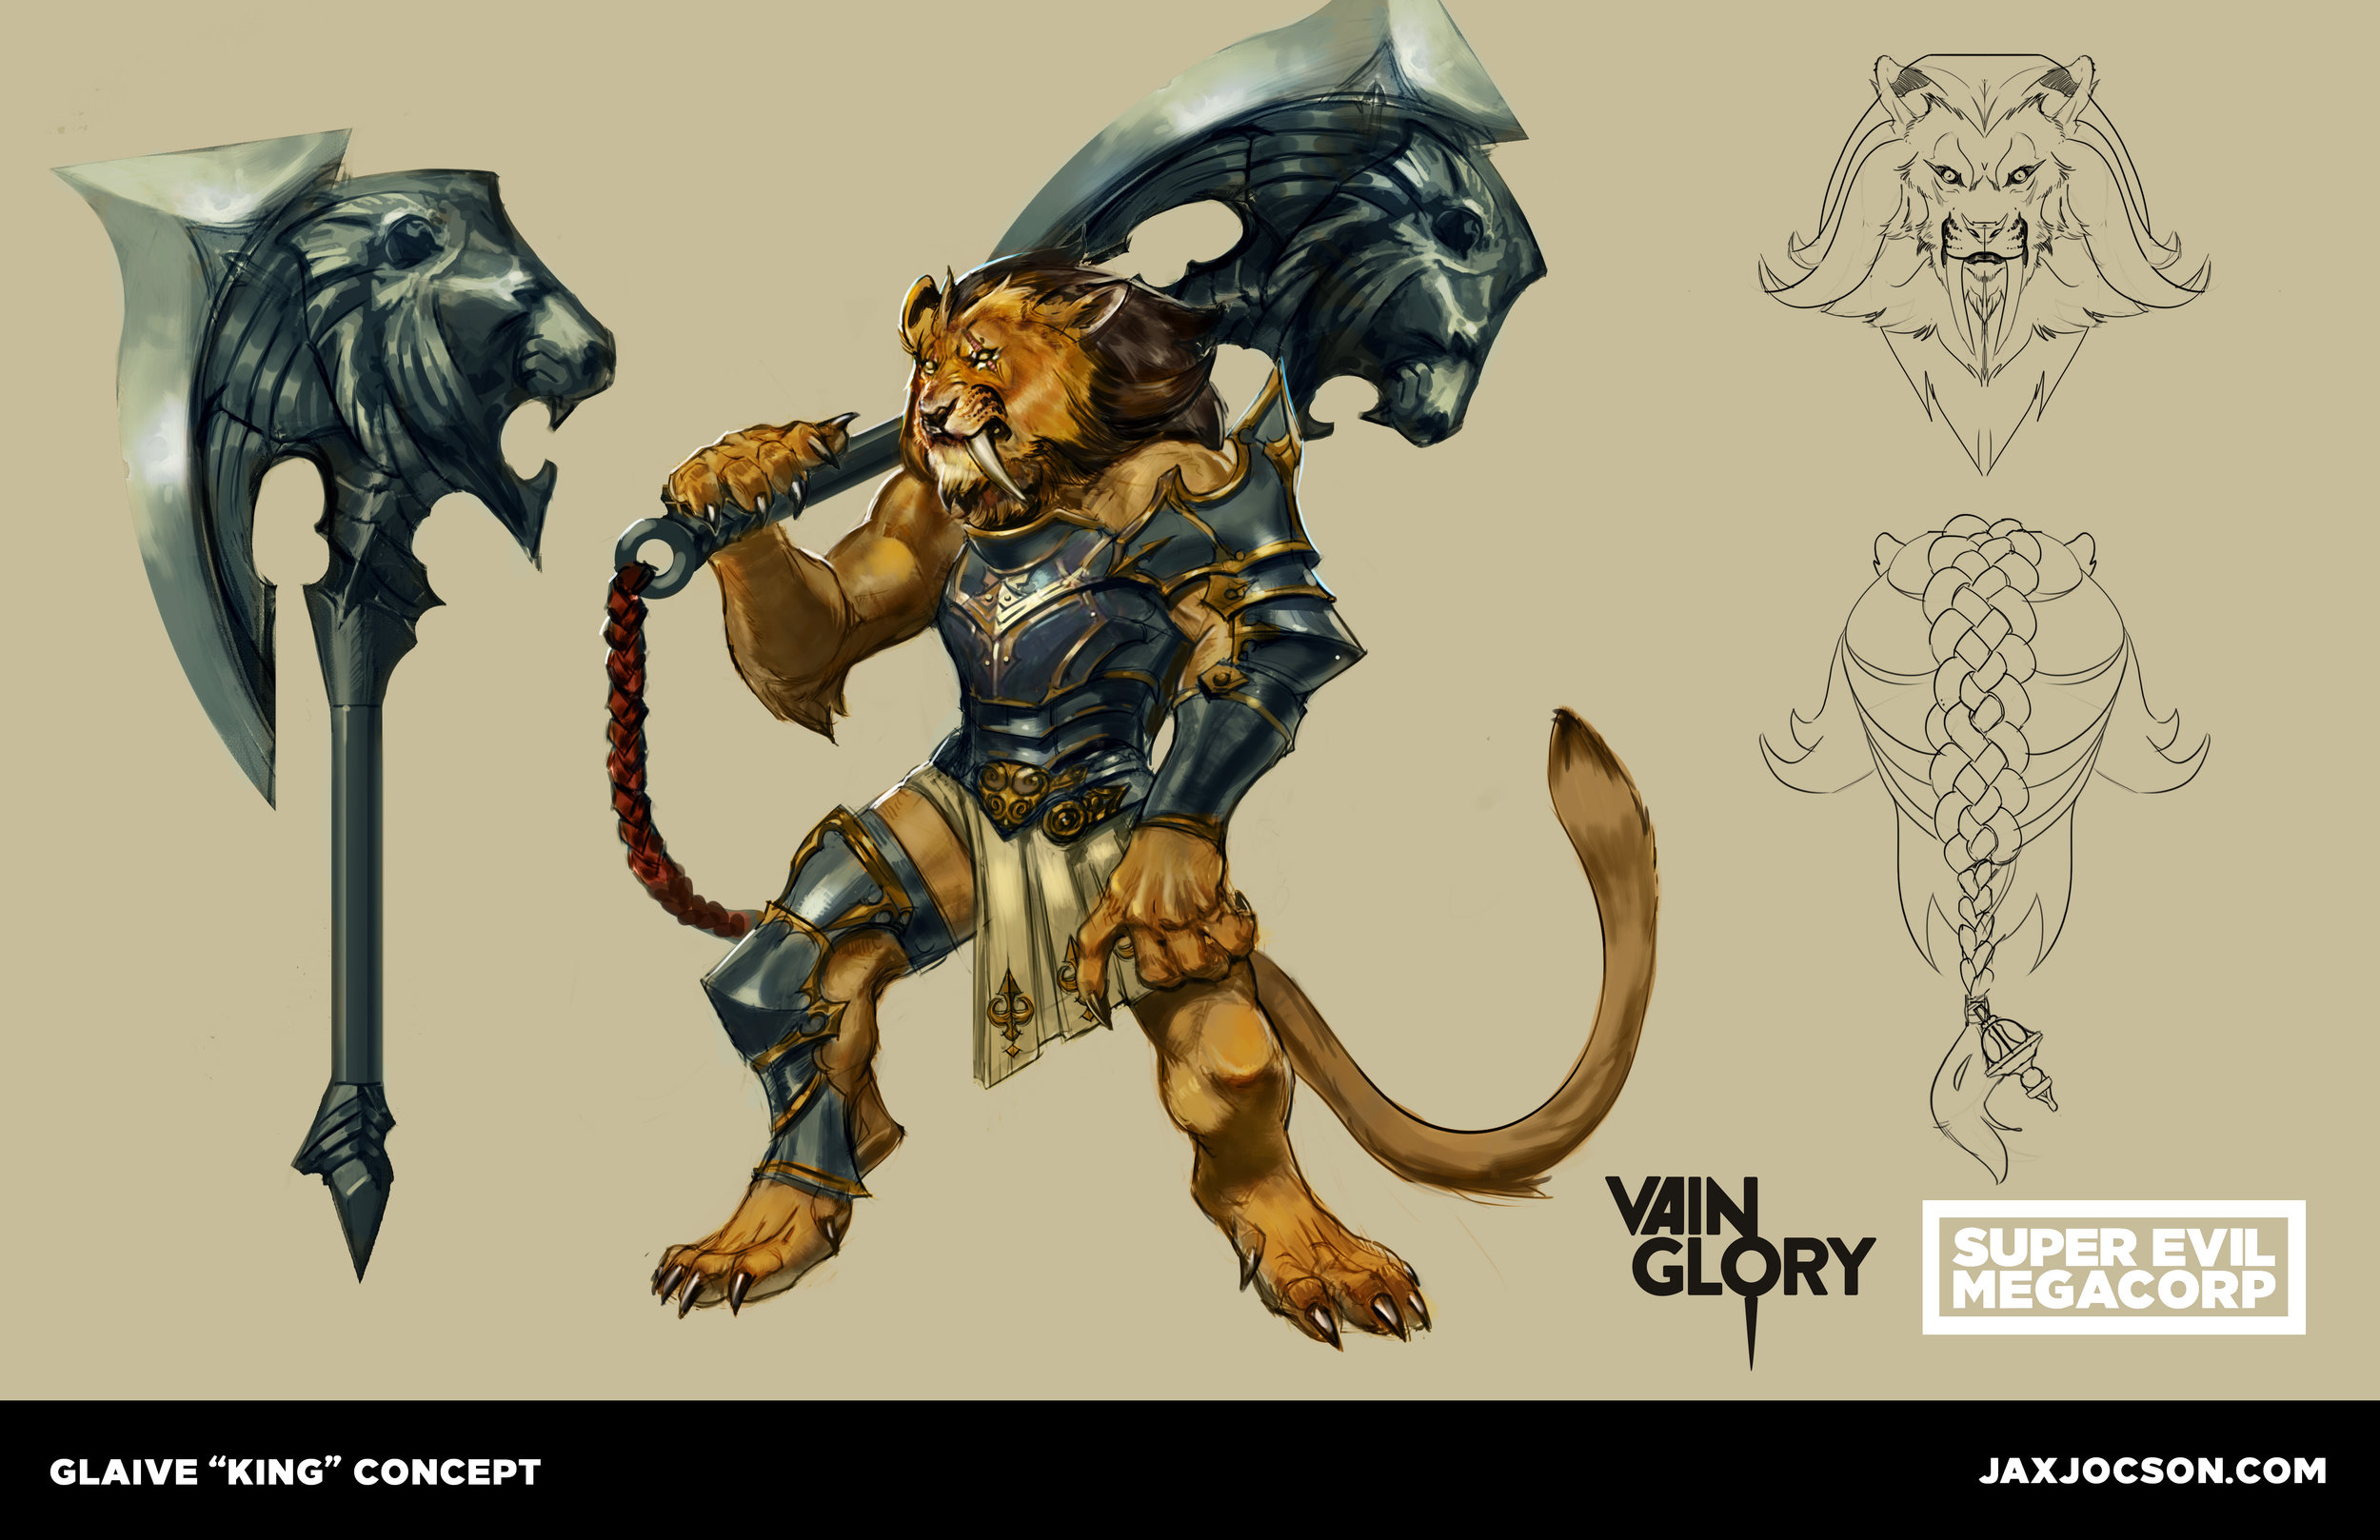 Designing skins for existing Heroes is a great assignment - as the designer you have to stick to the Hero's archetype and gameplay, but give it a fresh new spin. Glaive plays how he looks- big and strong! He comes sweeping into a team fight suddenly and stuns an enemy with his weapon. This design was fun to execute, especially his fluffy mane, ornate hair tie, and his regal, gladiator outfit.